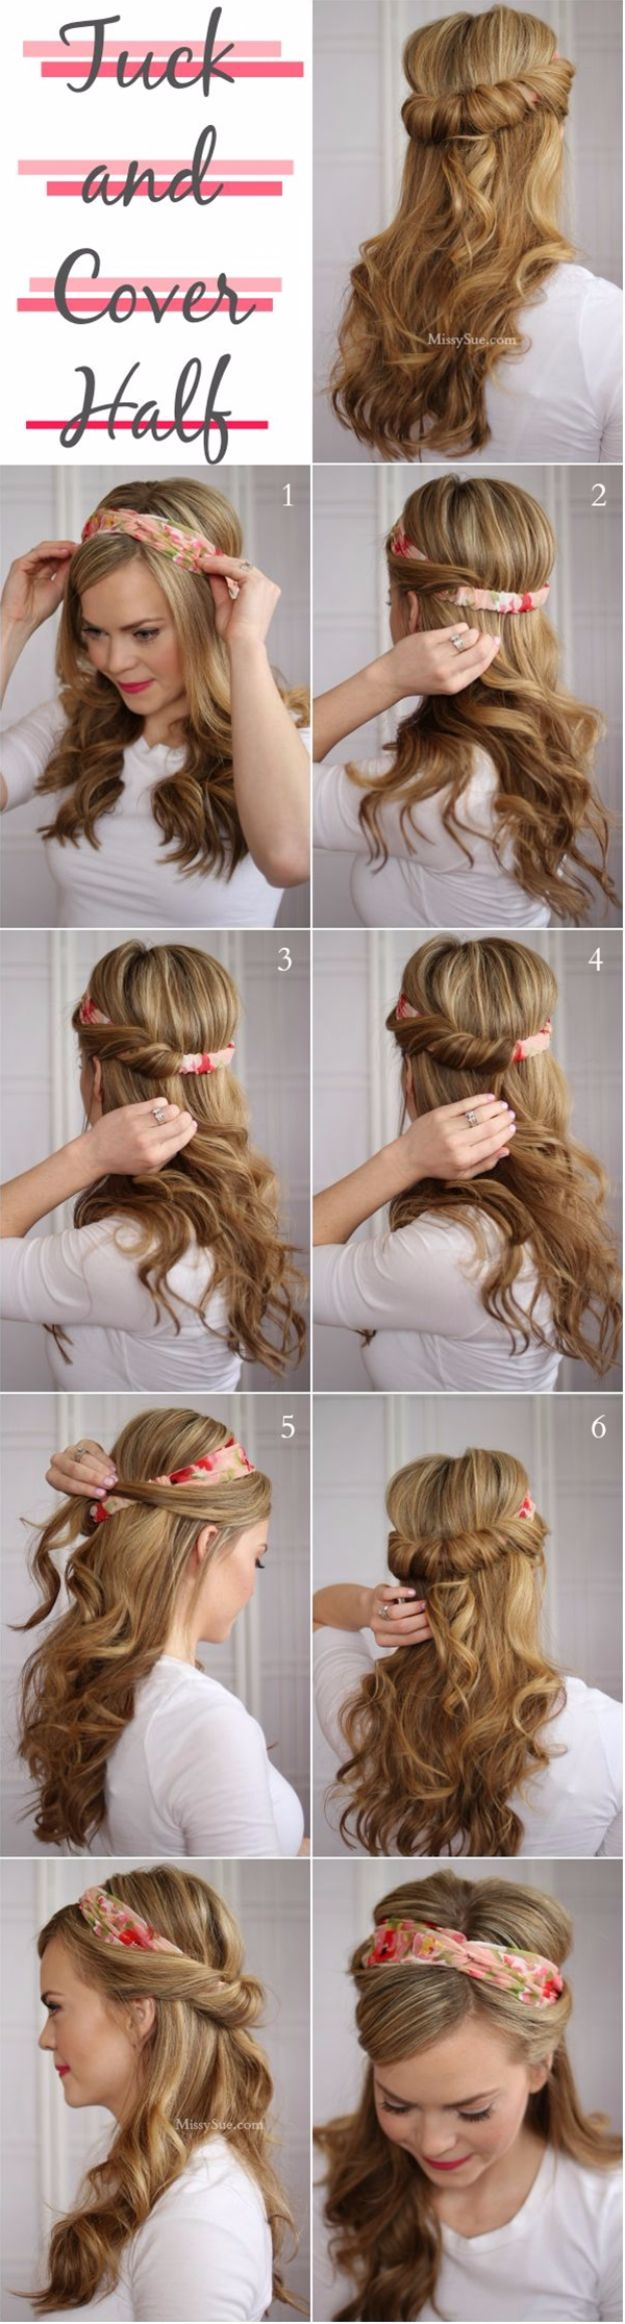 Cool Hair Tutorials for Summer - Tuck and Cover Half Up Hairstyle - Easy Hairstyles and Creative Looks for Hair - Beachy Waves, Hair Styles for Short Hair, Medium Length and Long Hair - Ponytails, Updo Ideas and Quick Last Minute Hairstyle for Teens, Teenagers and Women http://diyprojectsforteens.com/cool-hairstyles-summer